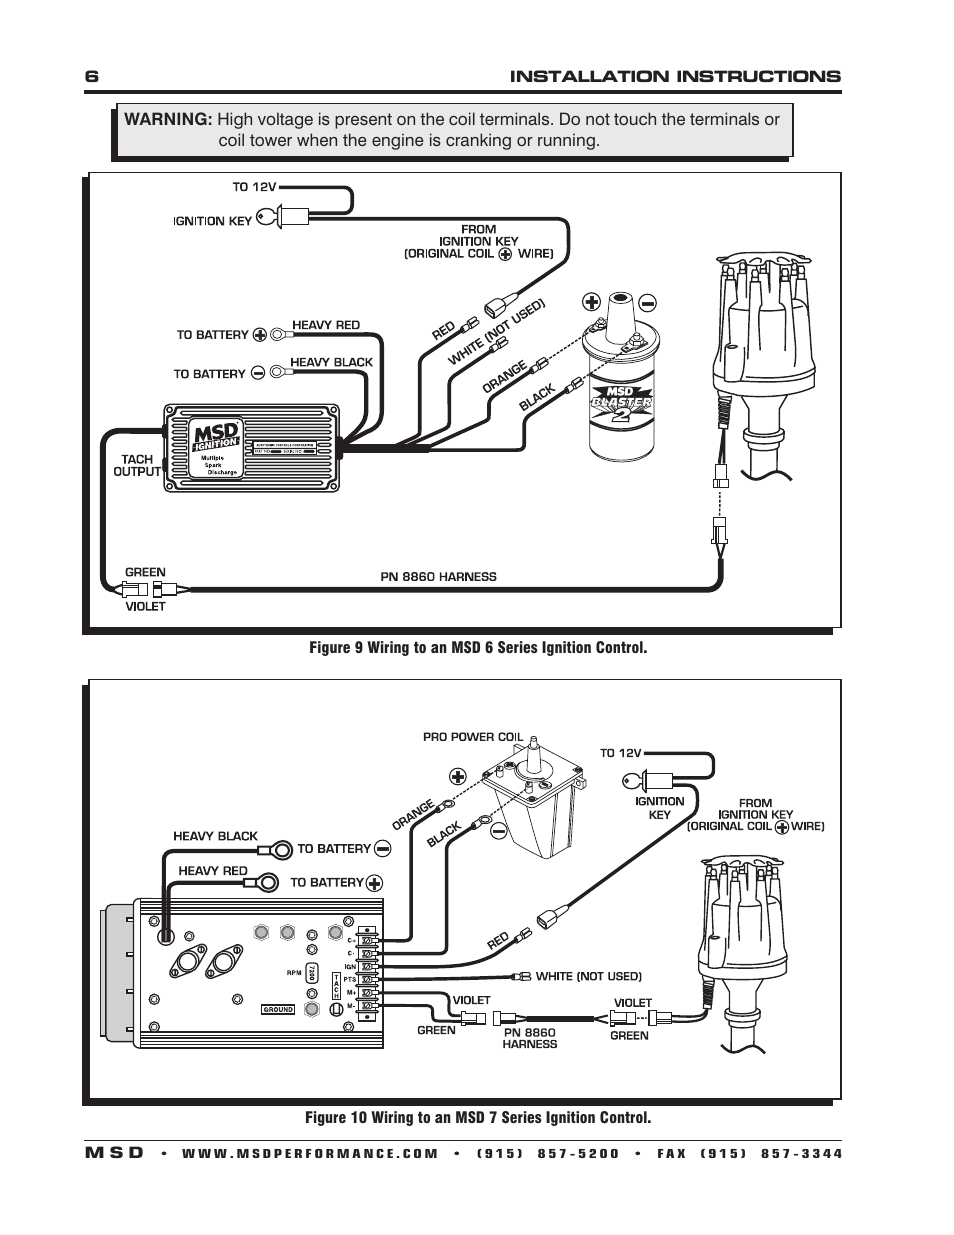 Olds 455 Distributor Wiring Diagram Schematic Diagrams 1970 Ignition Coil Classicoldsmobilecom Msd 8566 Oldsmobile V8 350 Installation User Manual Ford Module